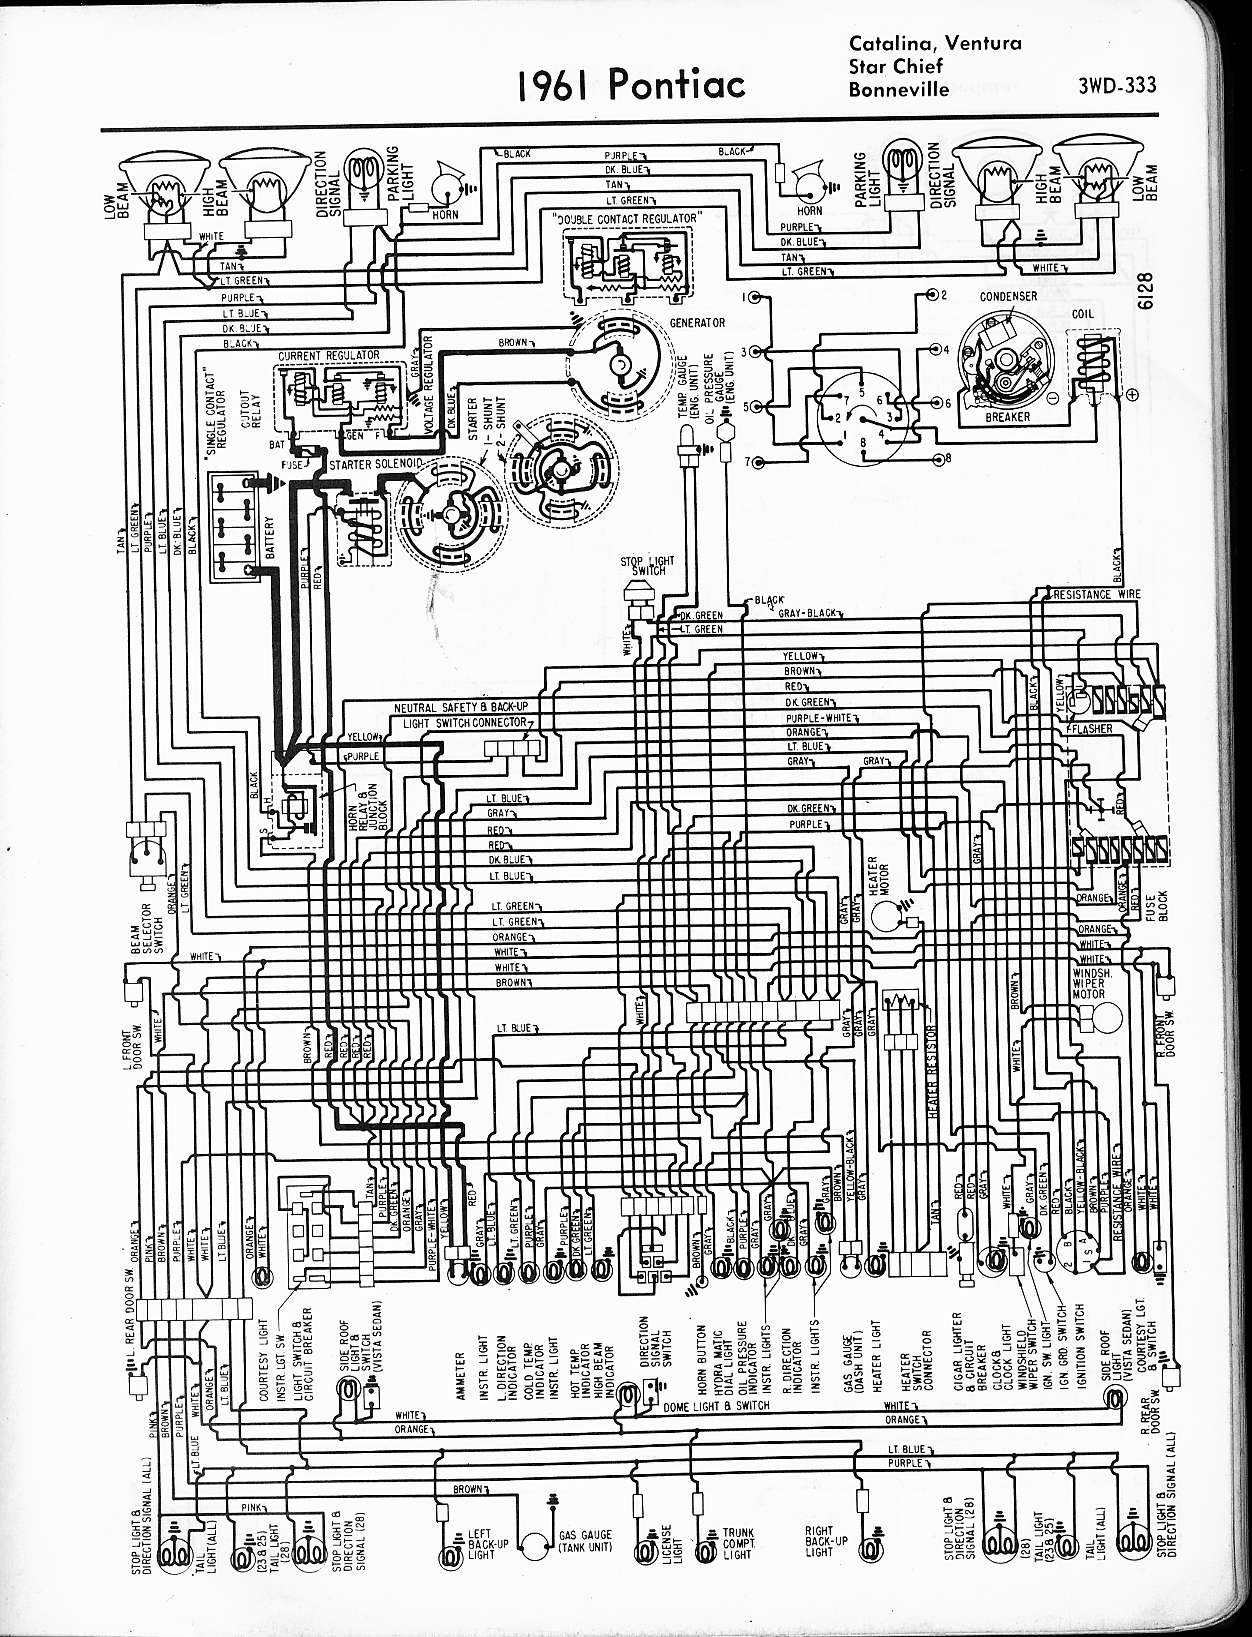 WRG-7447] 95 Pontiac Bonneville Engine Diagram on